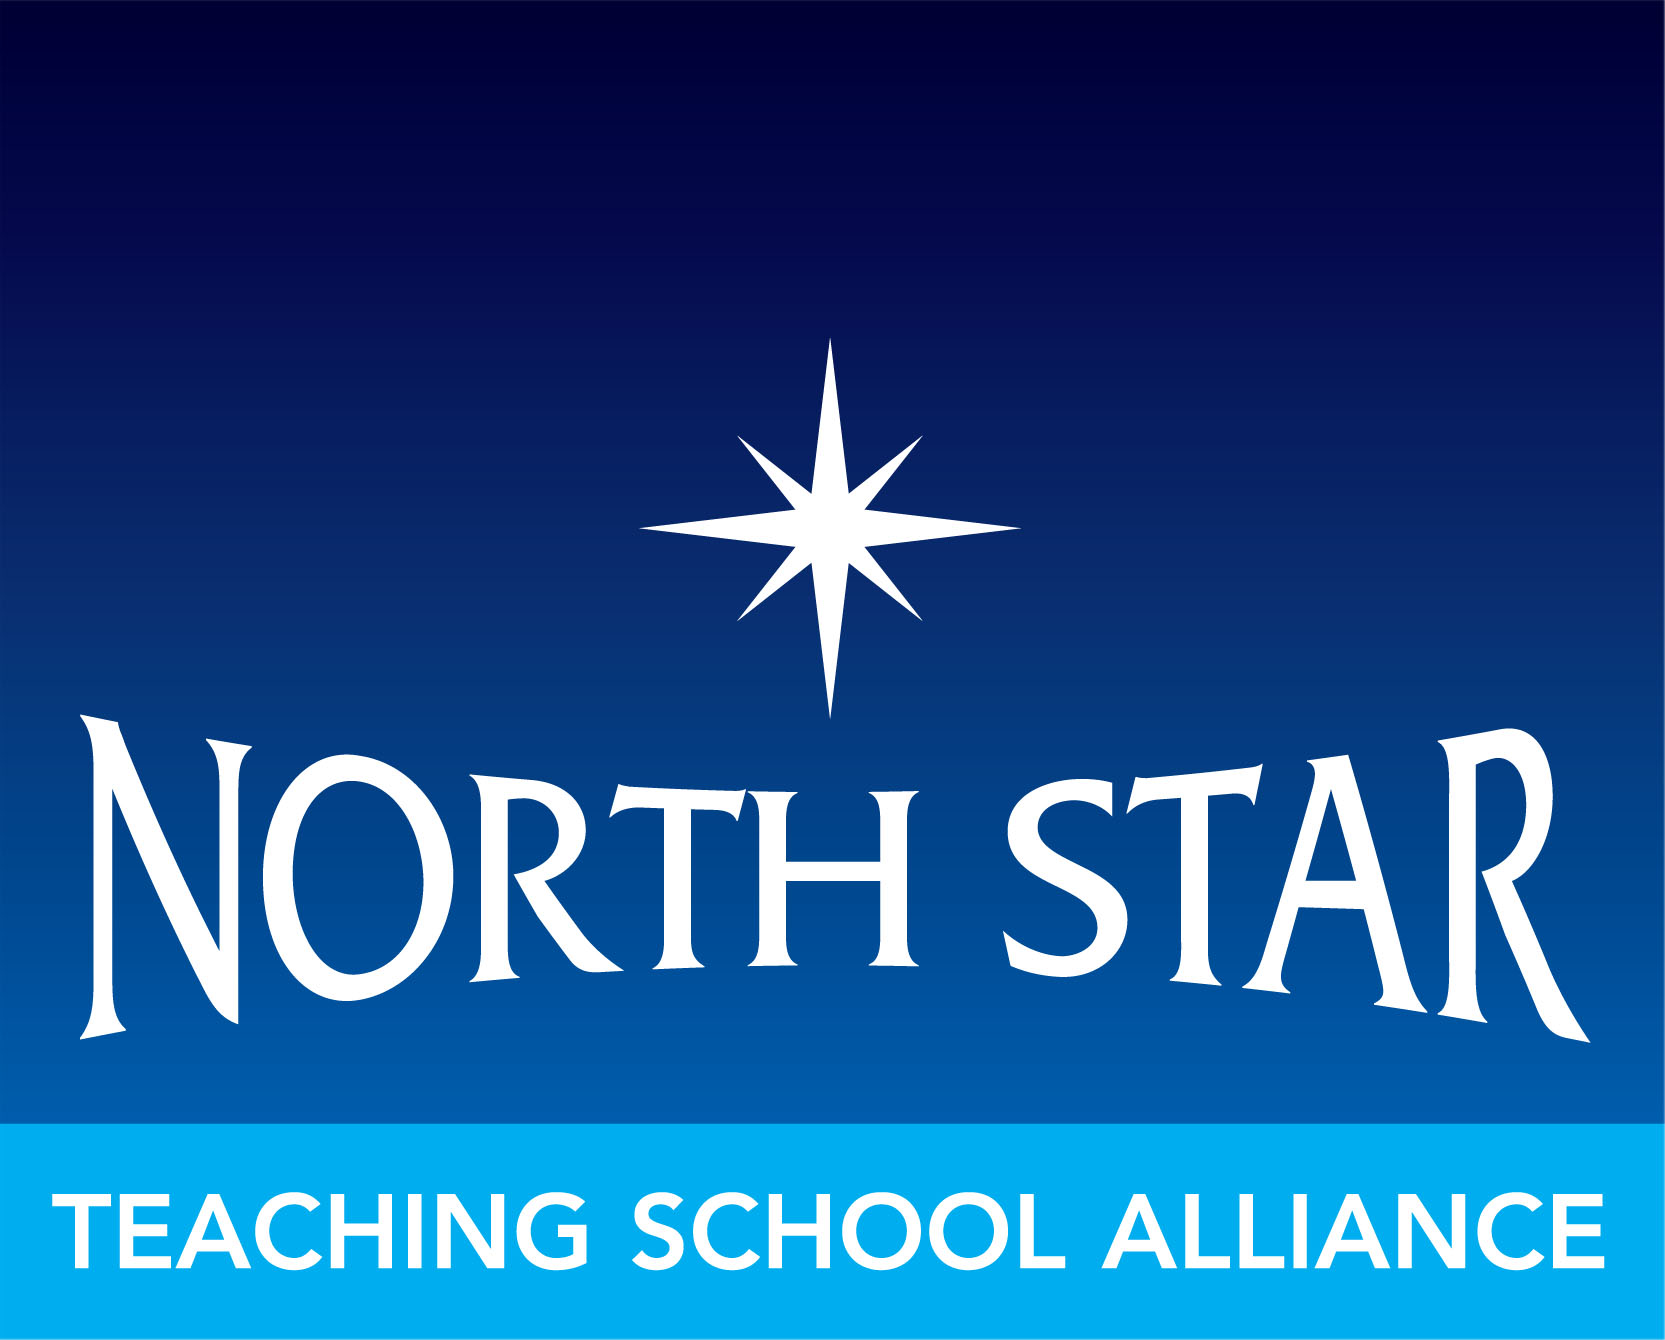 North Star Teaching School Alliance